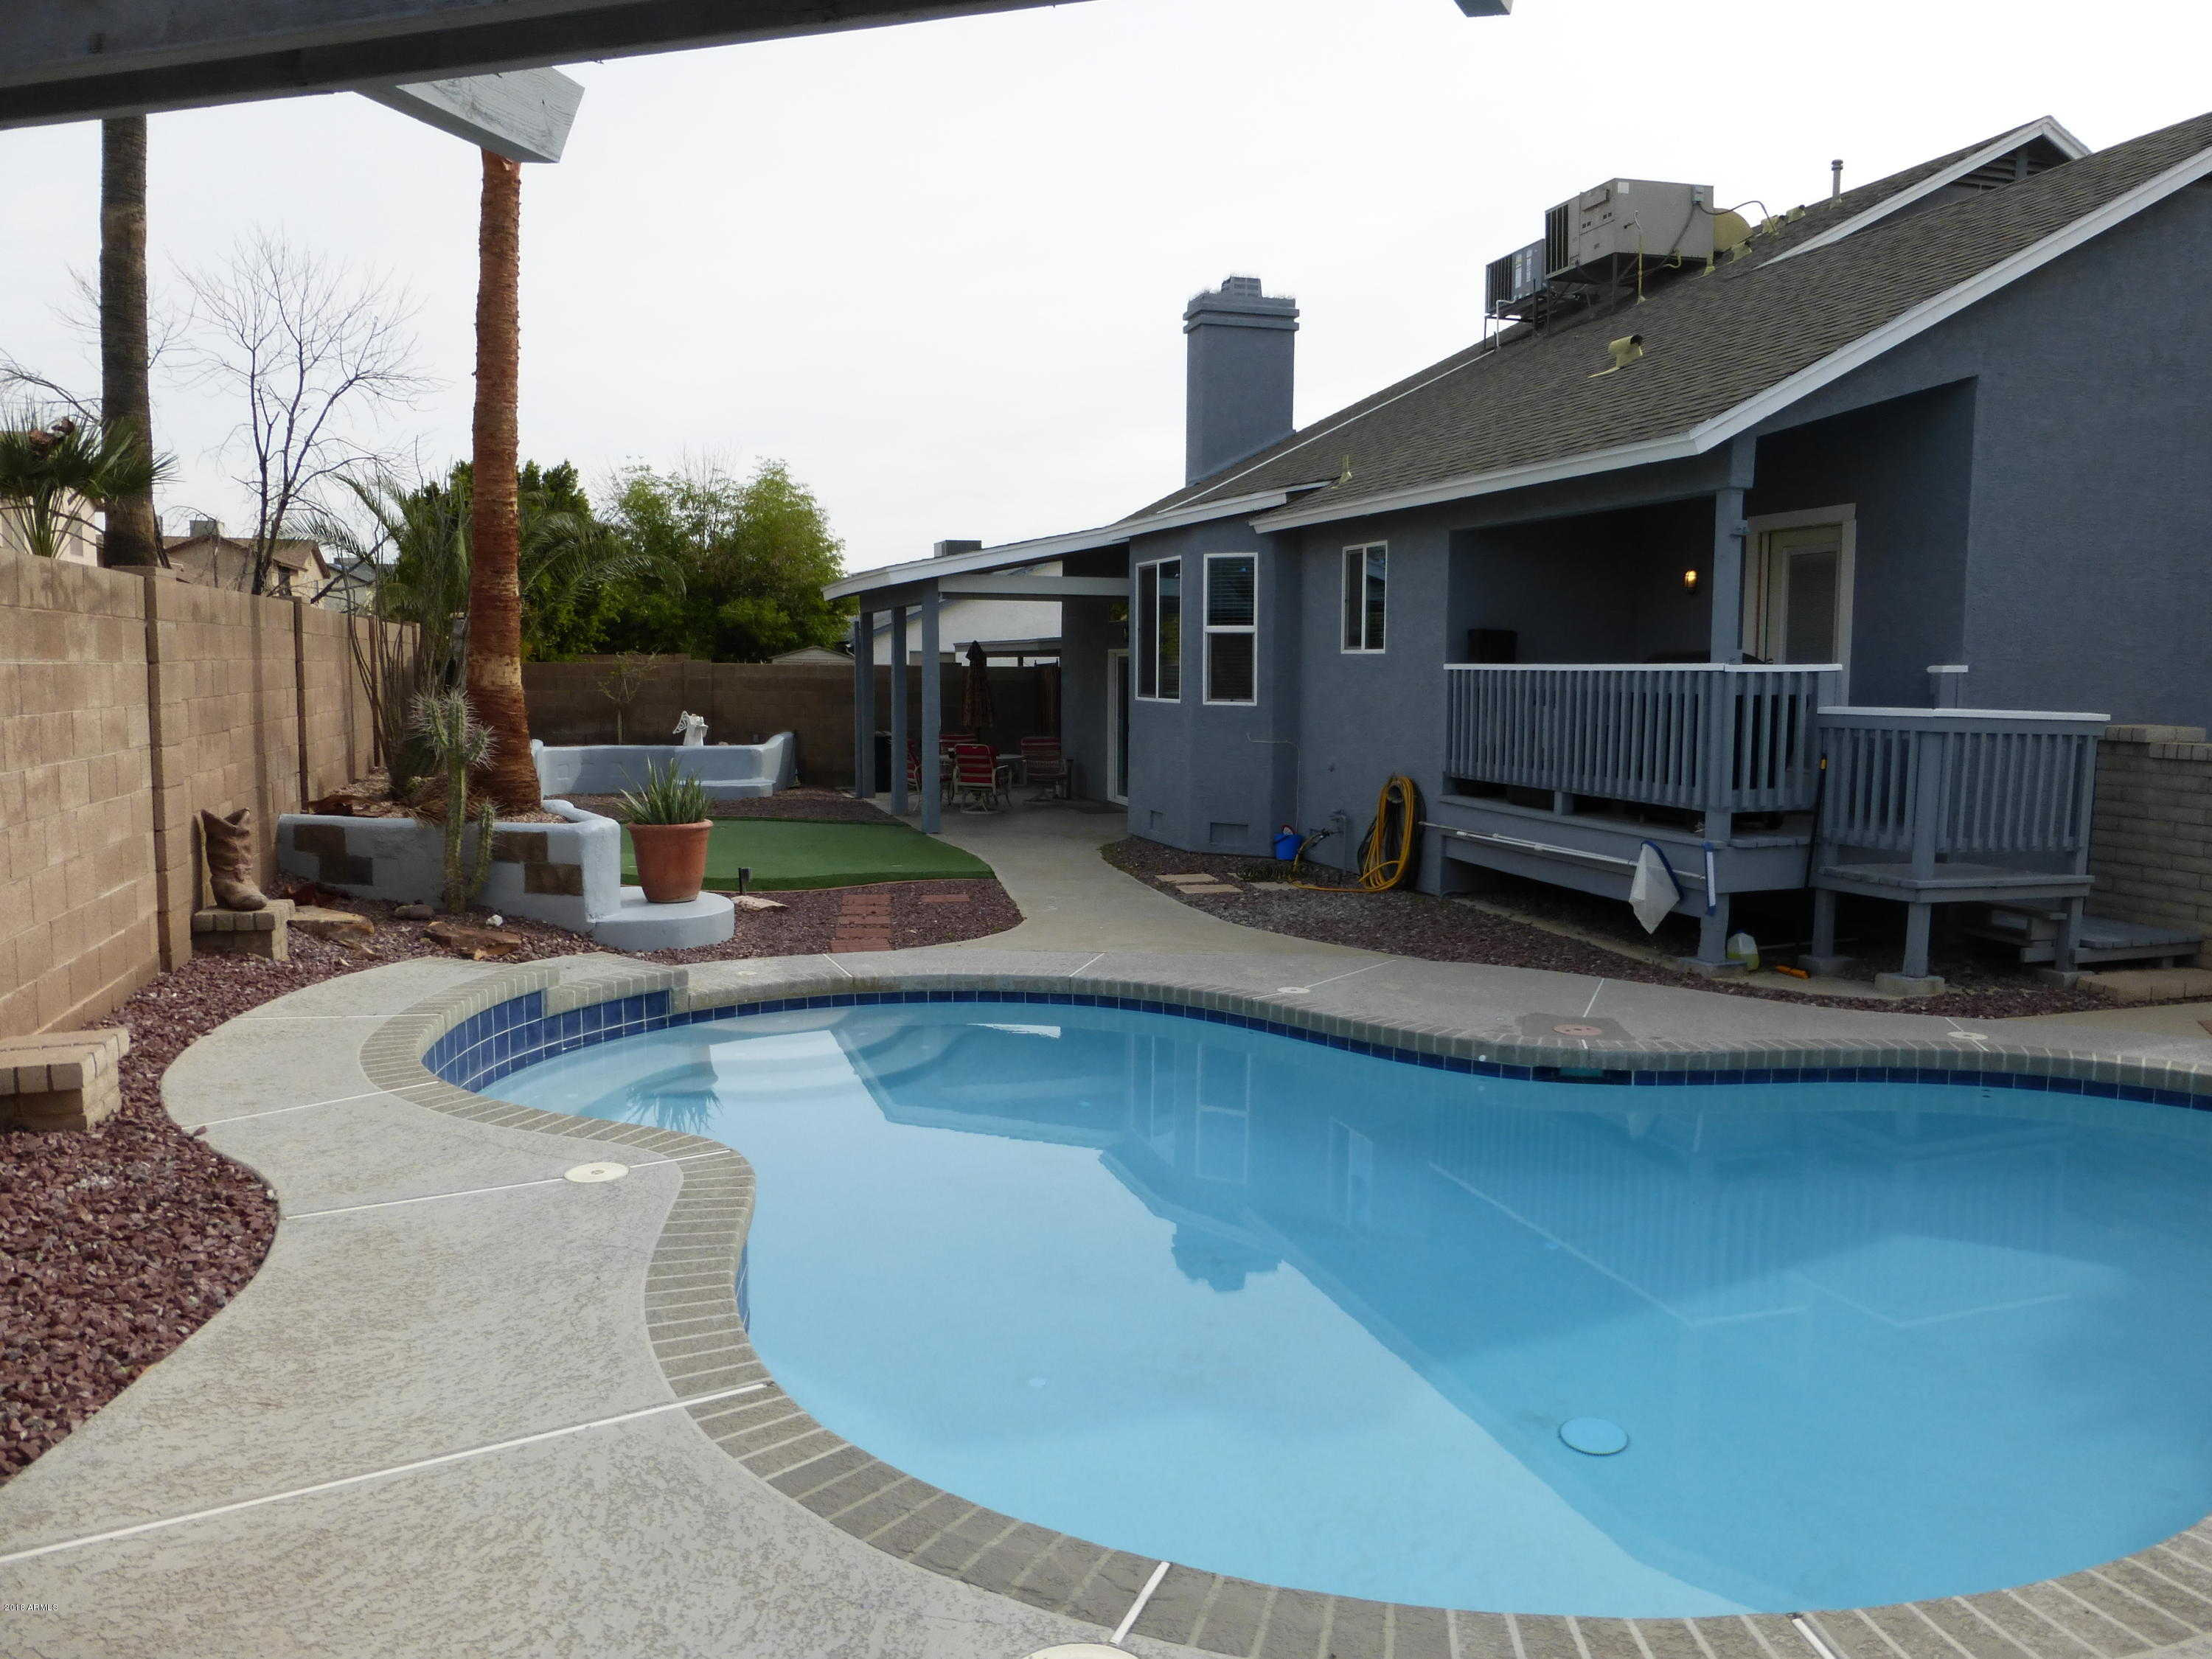 $324,000 - 4Br/3Ba - Home for Sale in West Plaza 31 & 32 Amd Lot 1-608 Tr A-c, Glendale